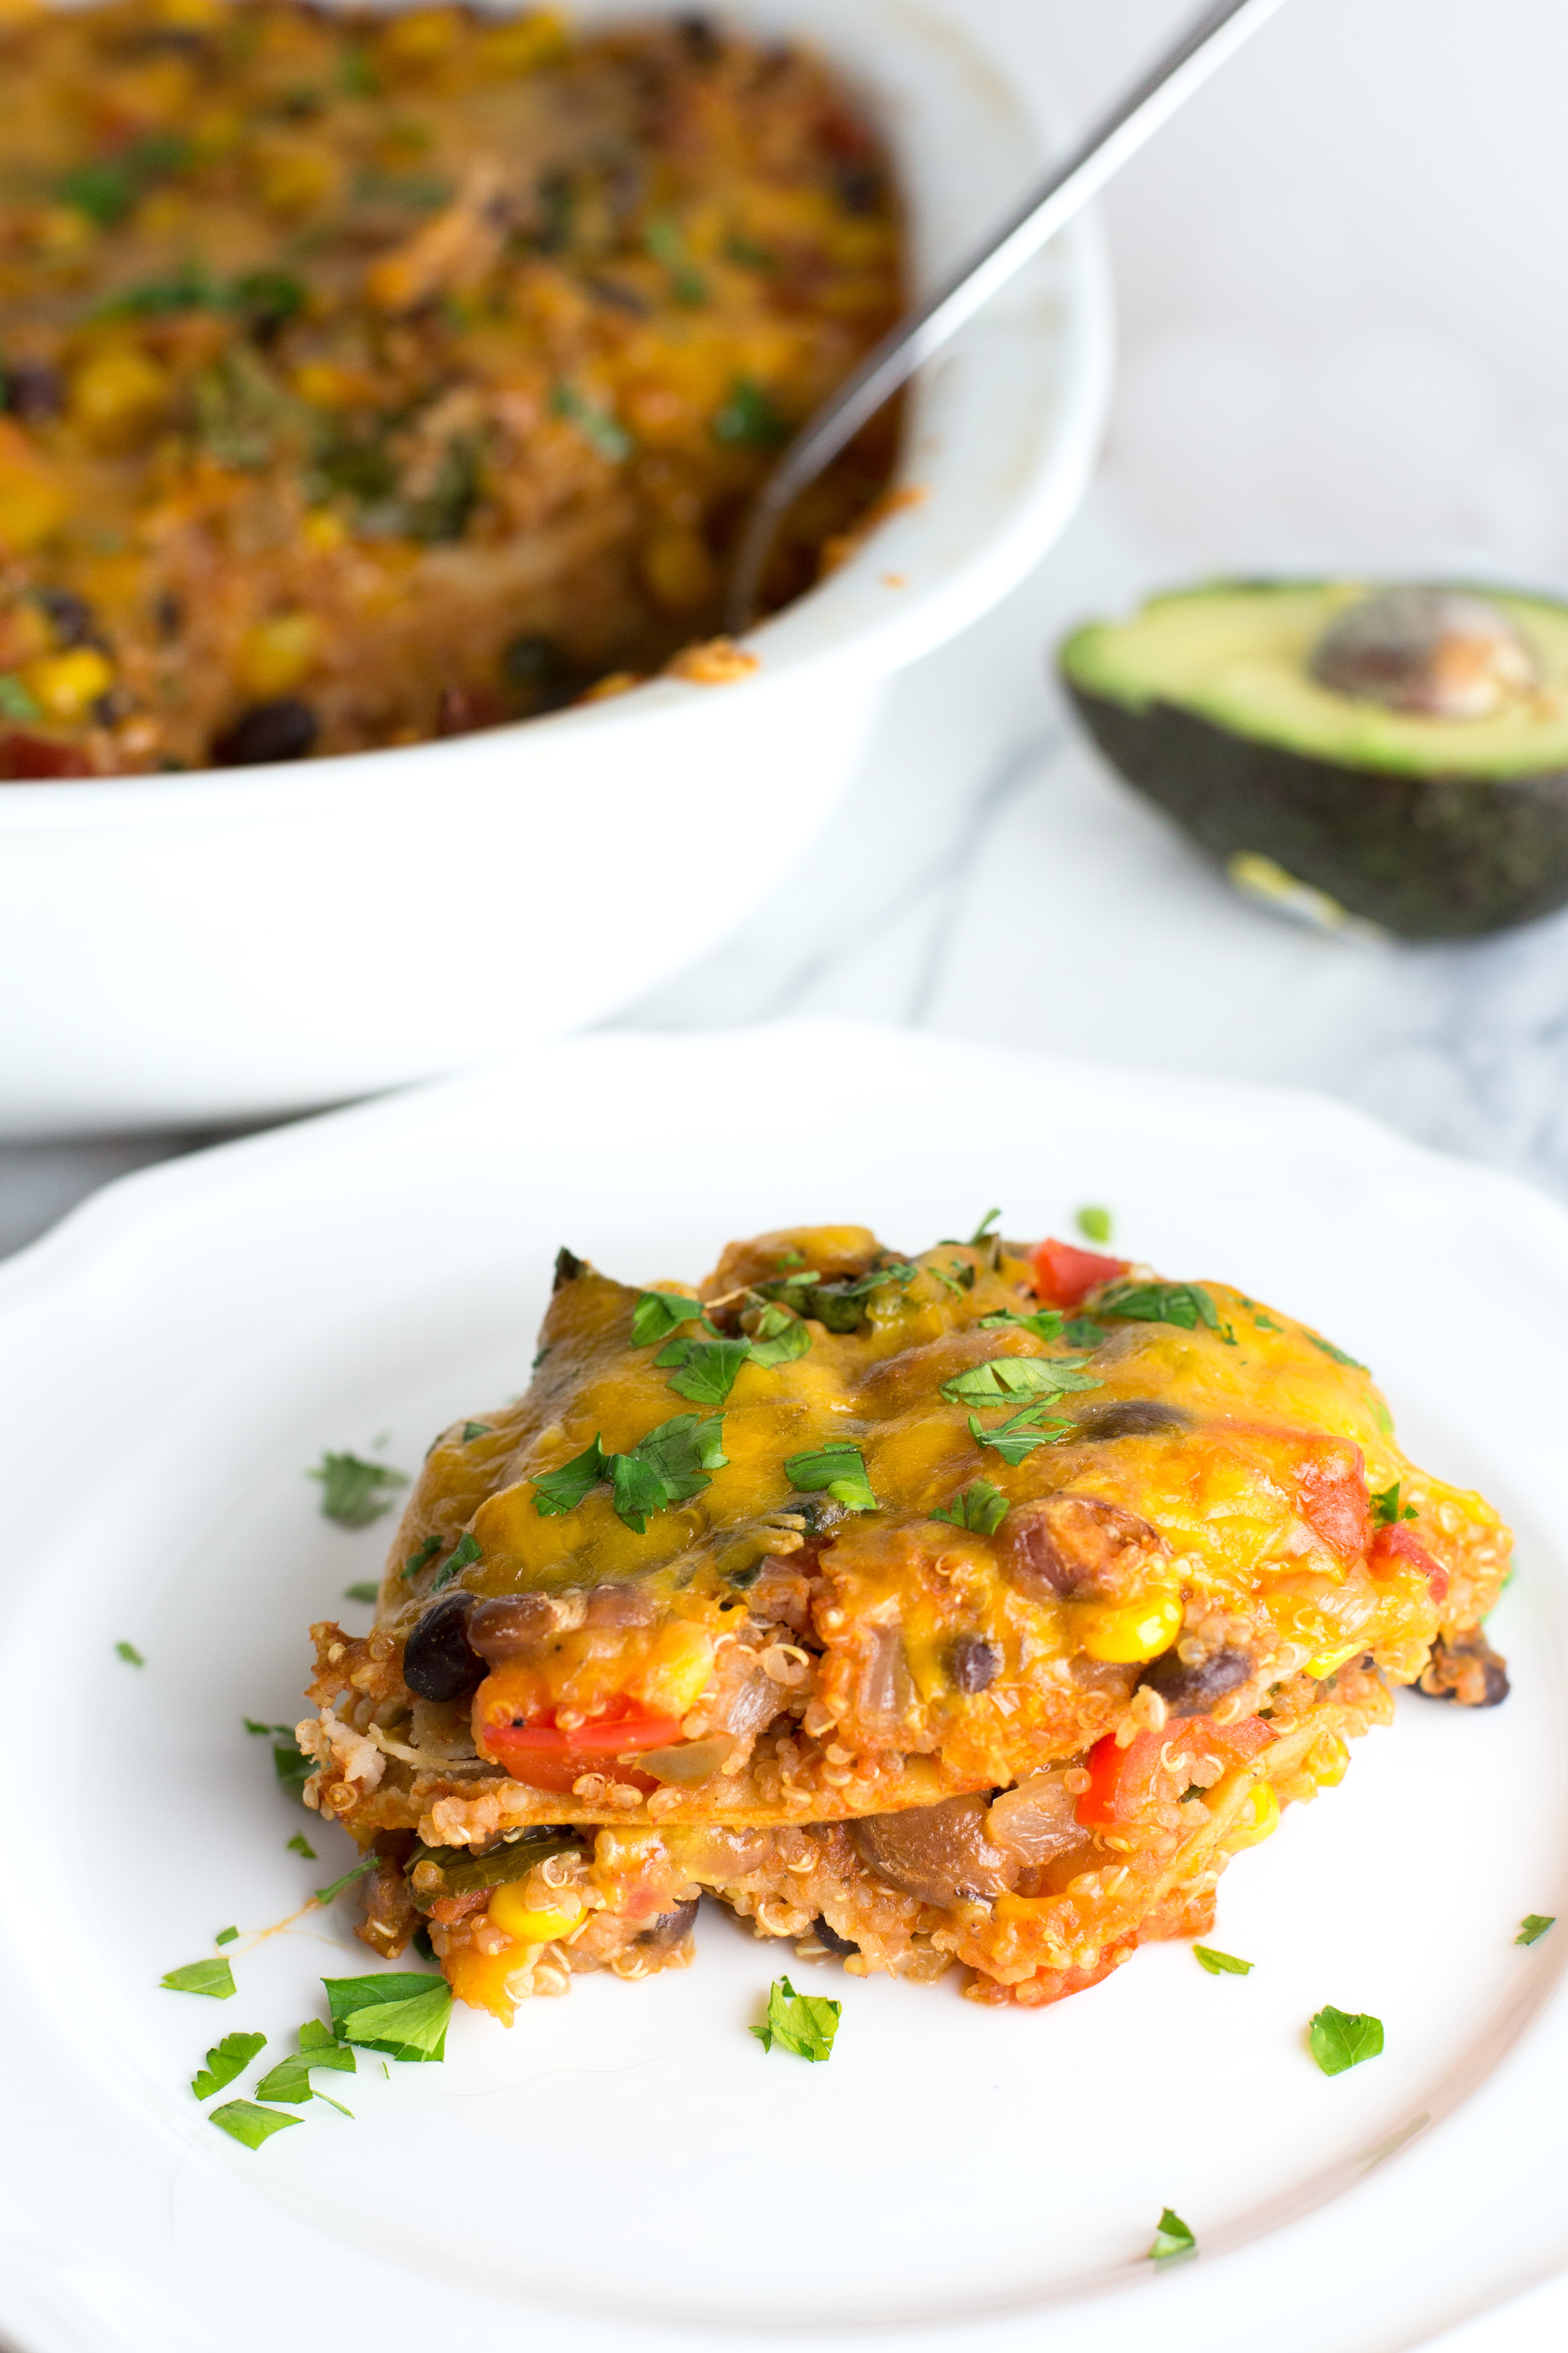 Mexican Quinoa Casserole - A filling, vegetarian casserole loaded with veggies & Mexican flavors!